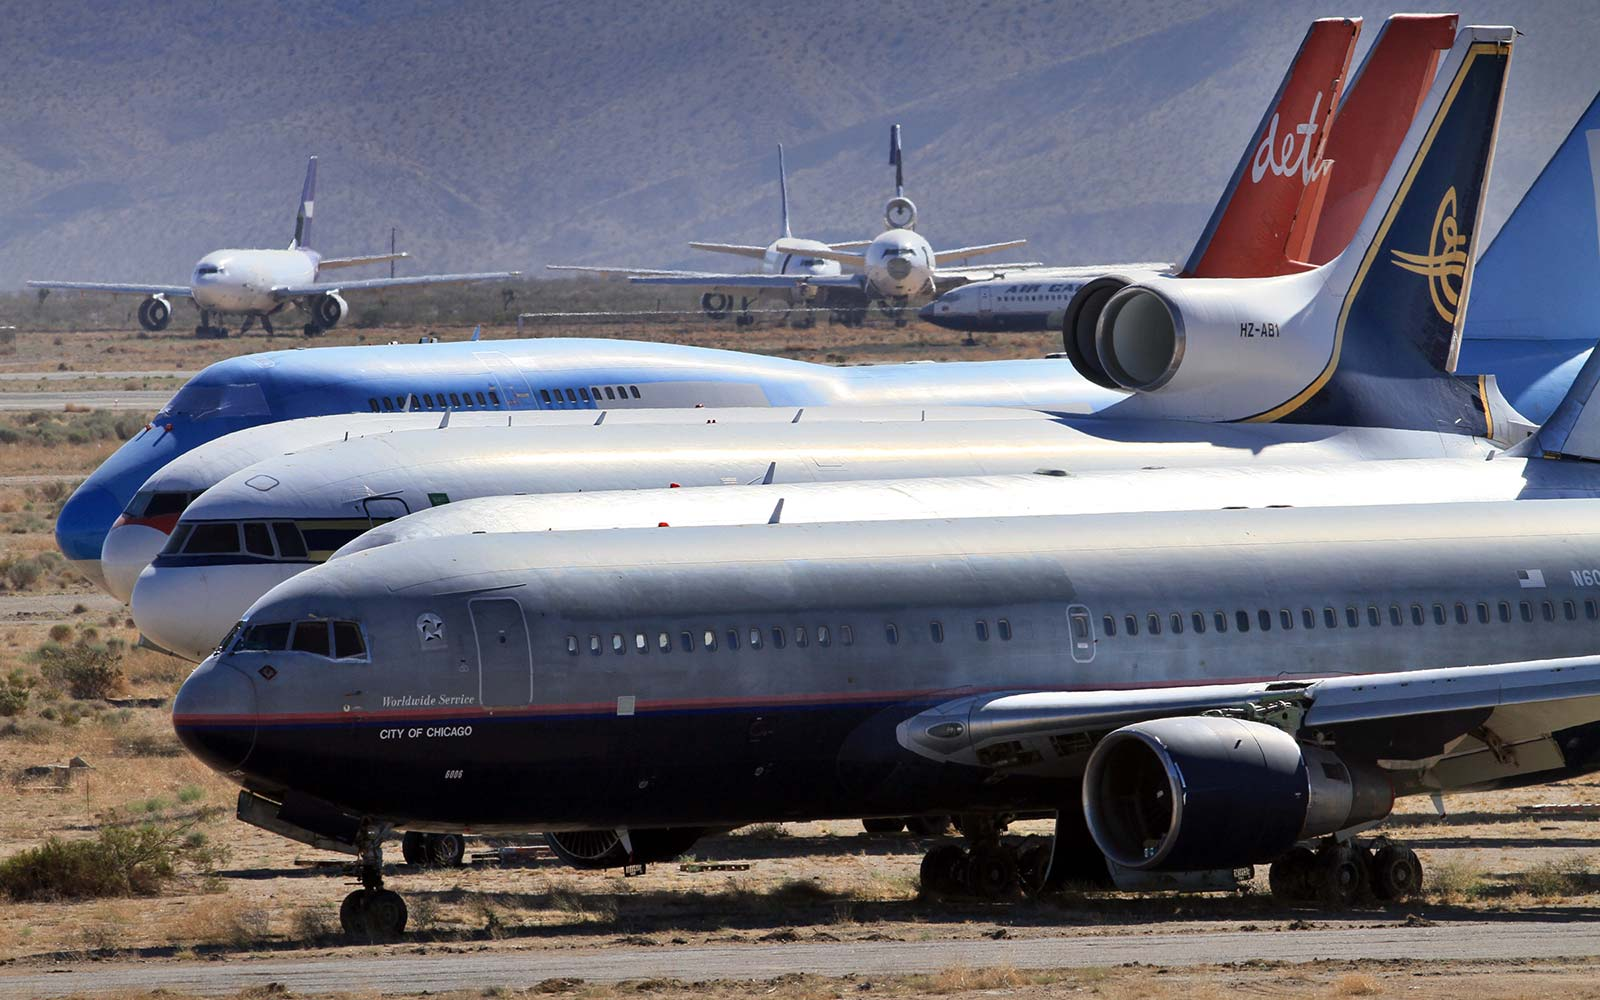 This Is Where Airplanes Go When They Retire